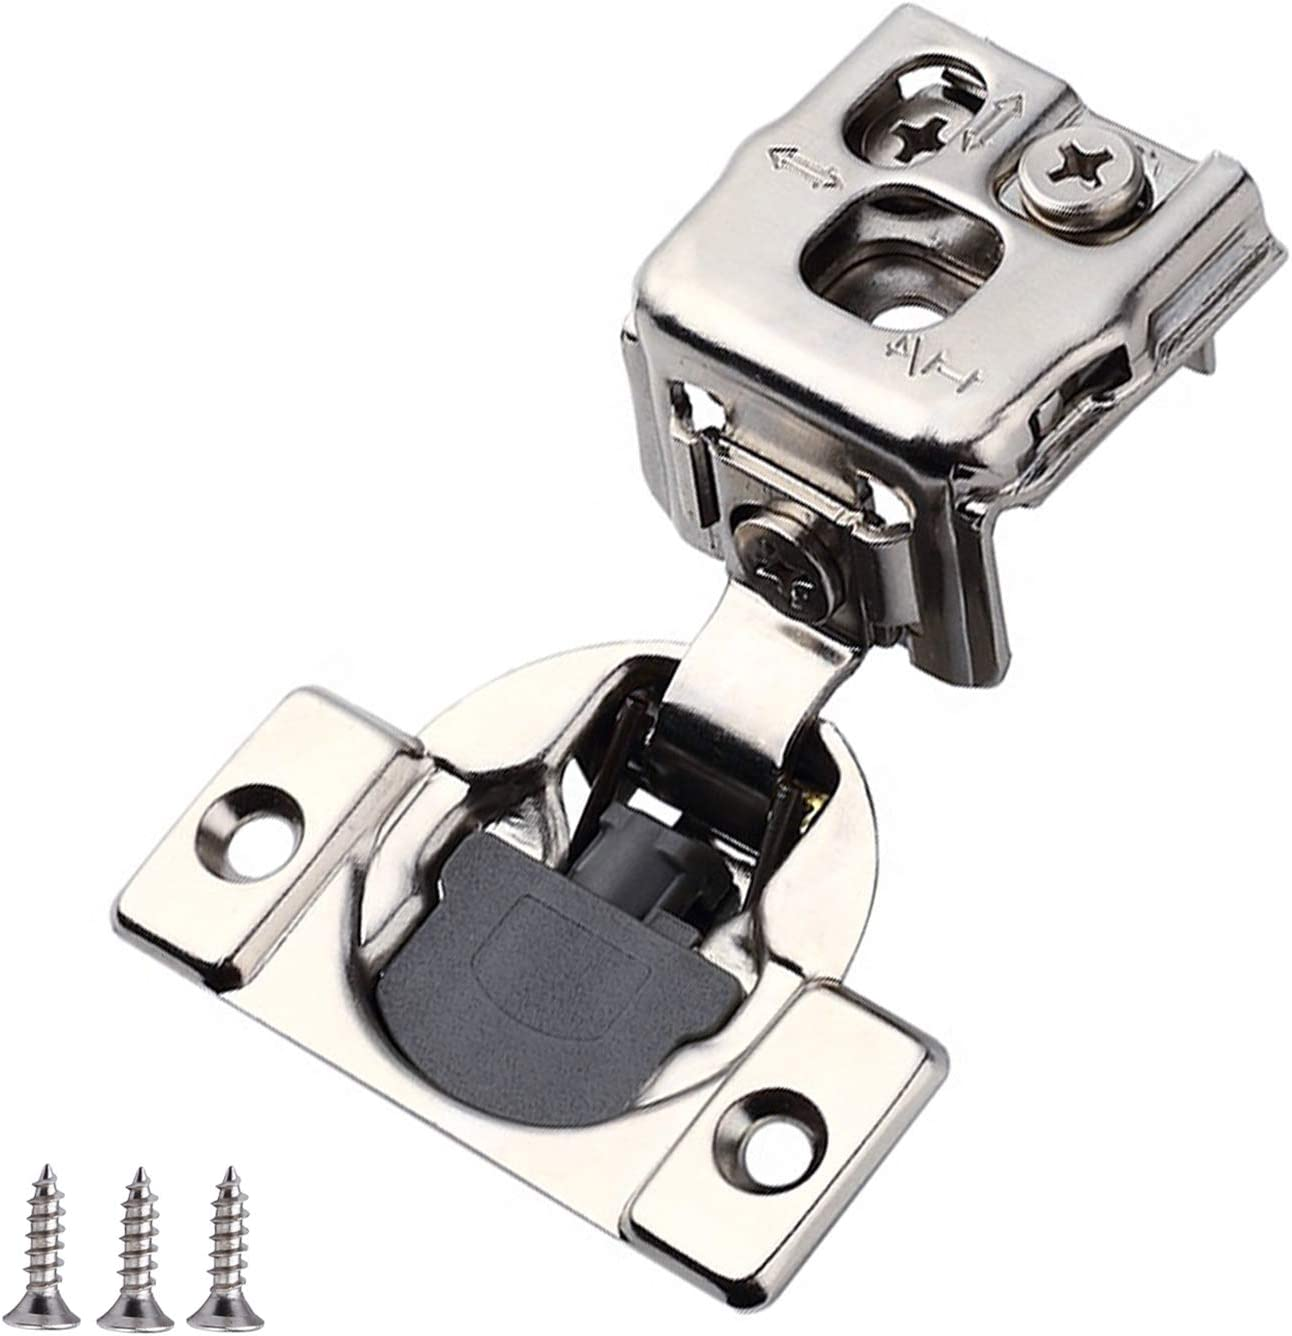 Homekoo 1-1/4 Overlay Soft Close Hinge Cabinet Face Frame Replacement Concealed Hinges 40Pcs